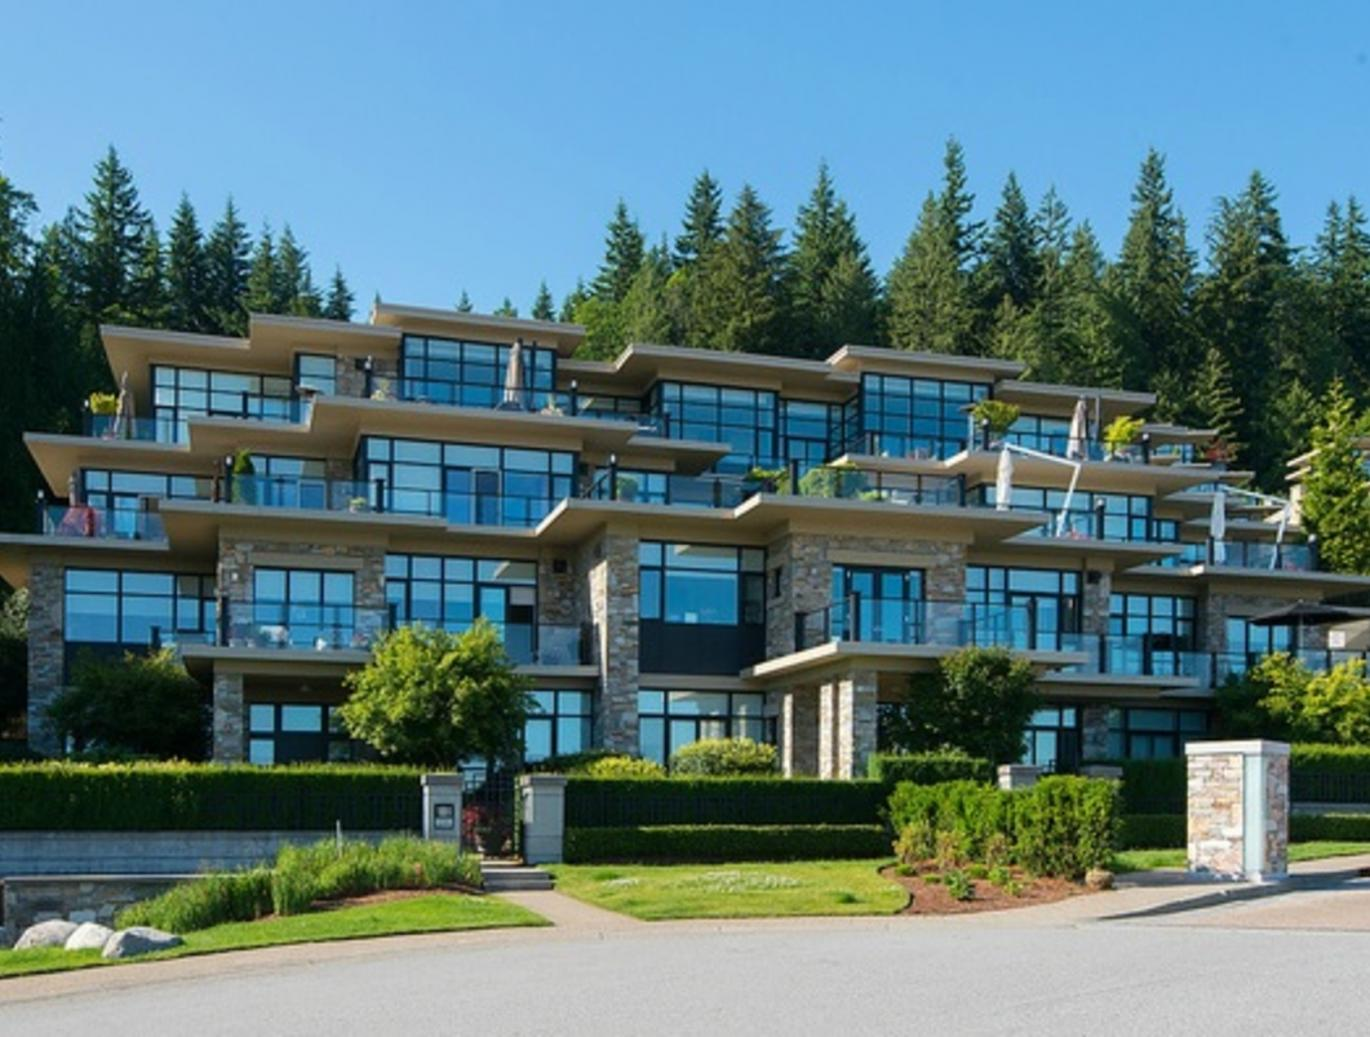 103 - 2285 Twin Creek Place, Whitby Estates, West Vancouver 3